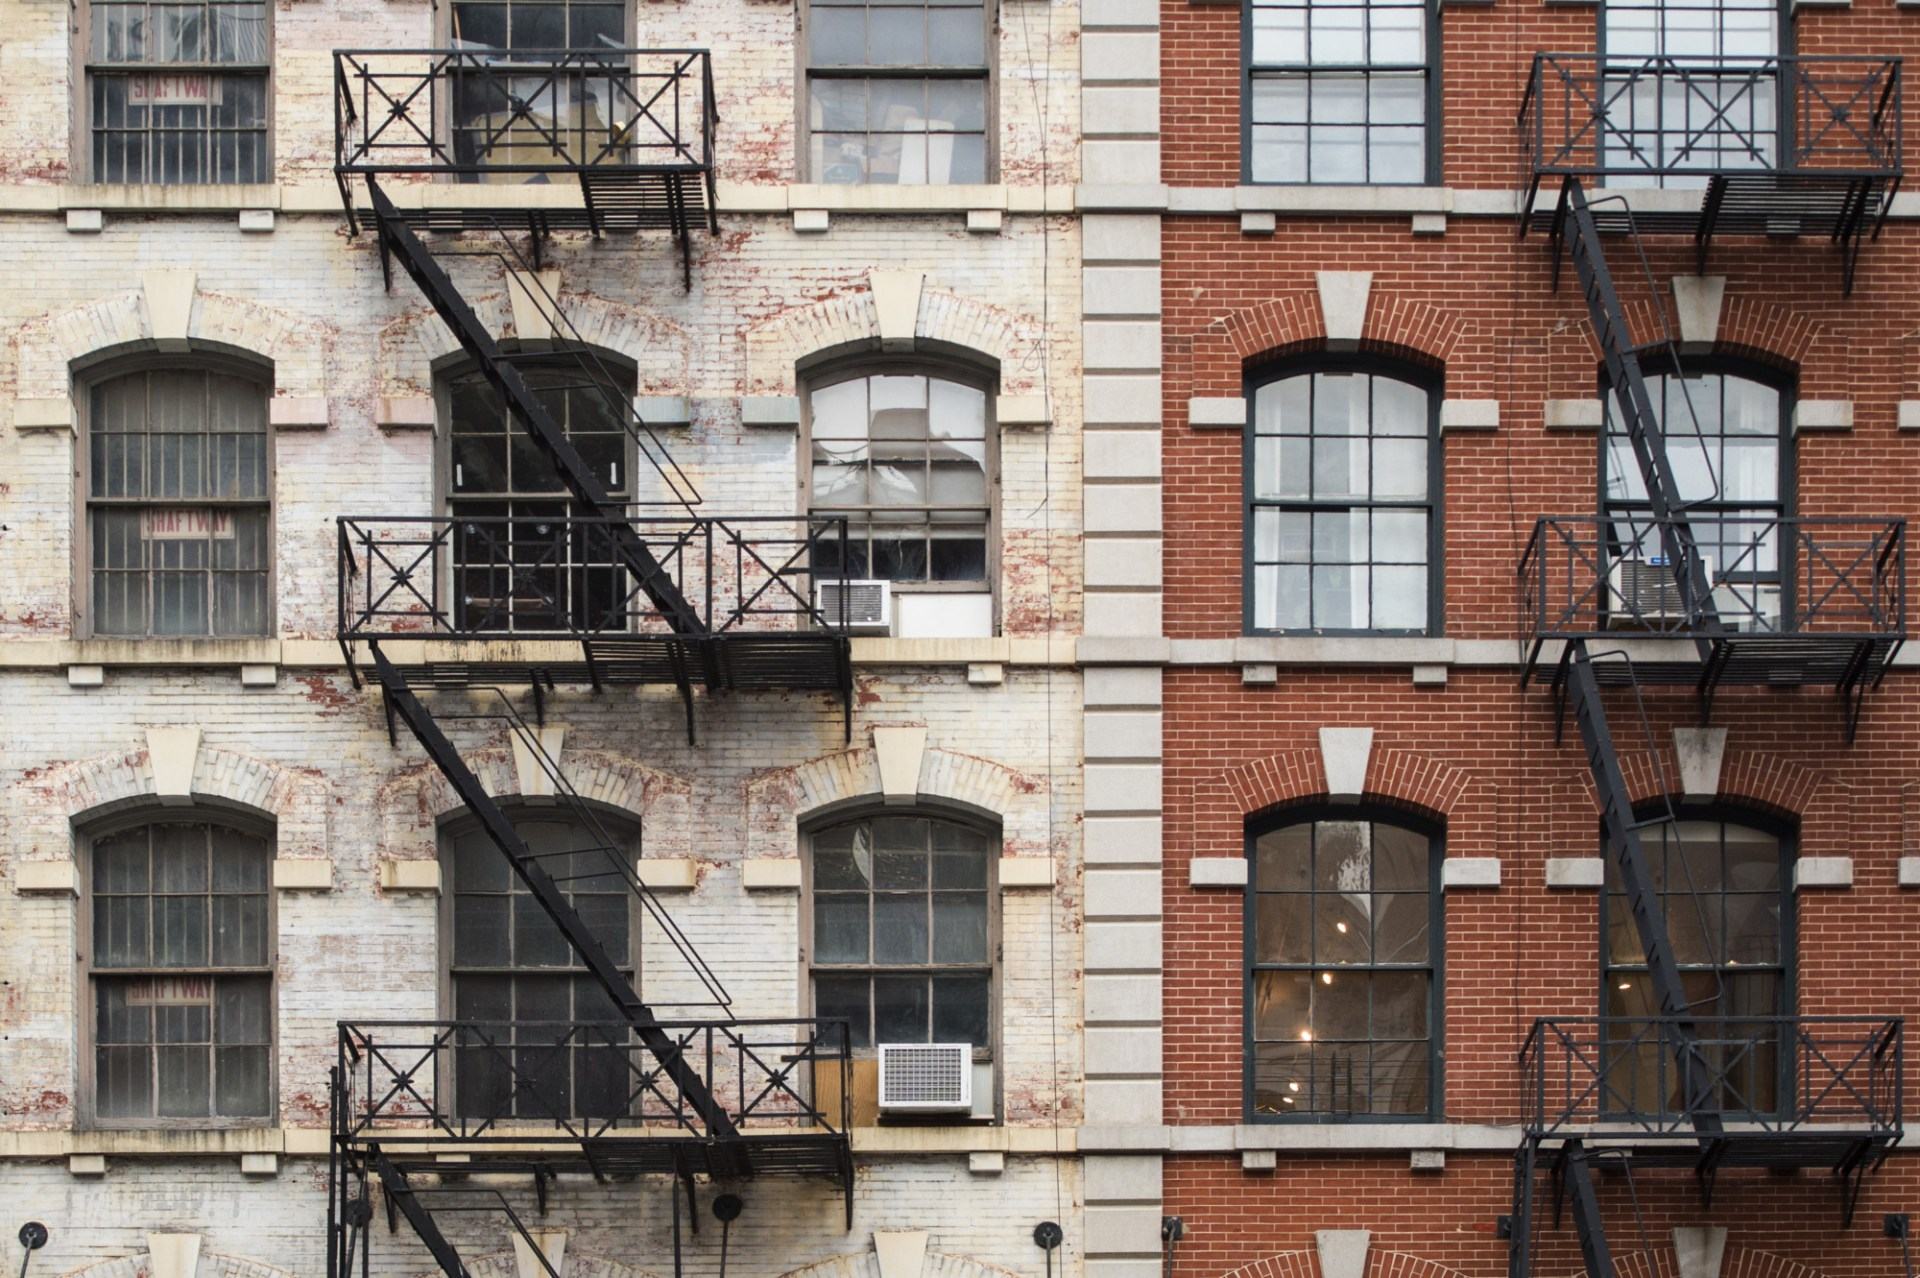 Rent-Stabilized vs. Controlled Apartments